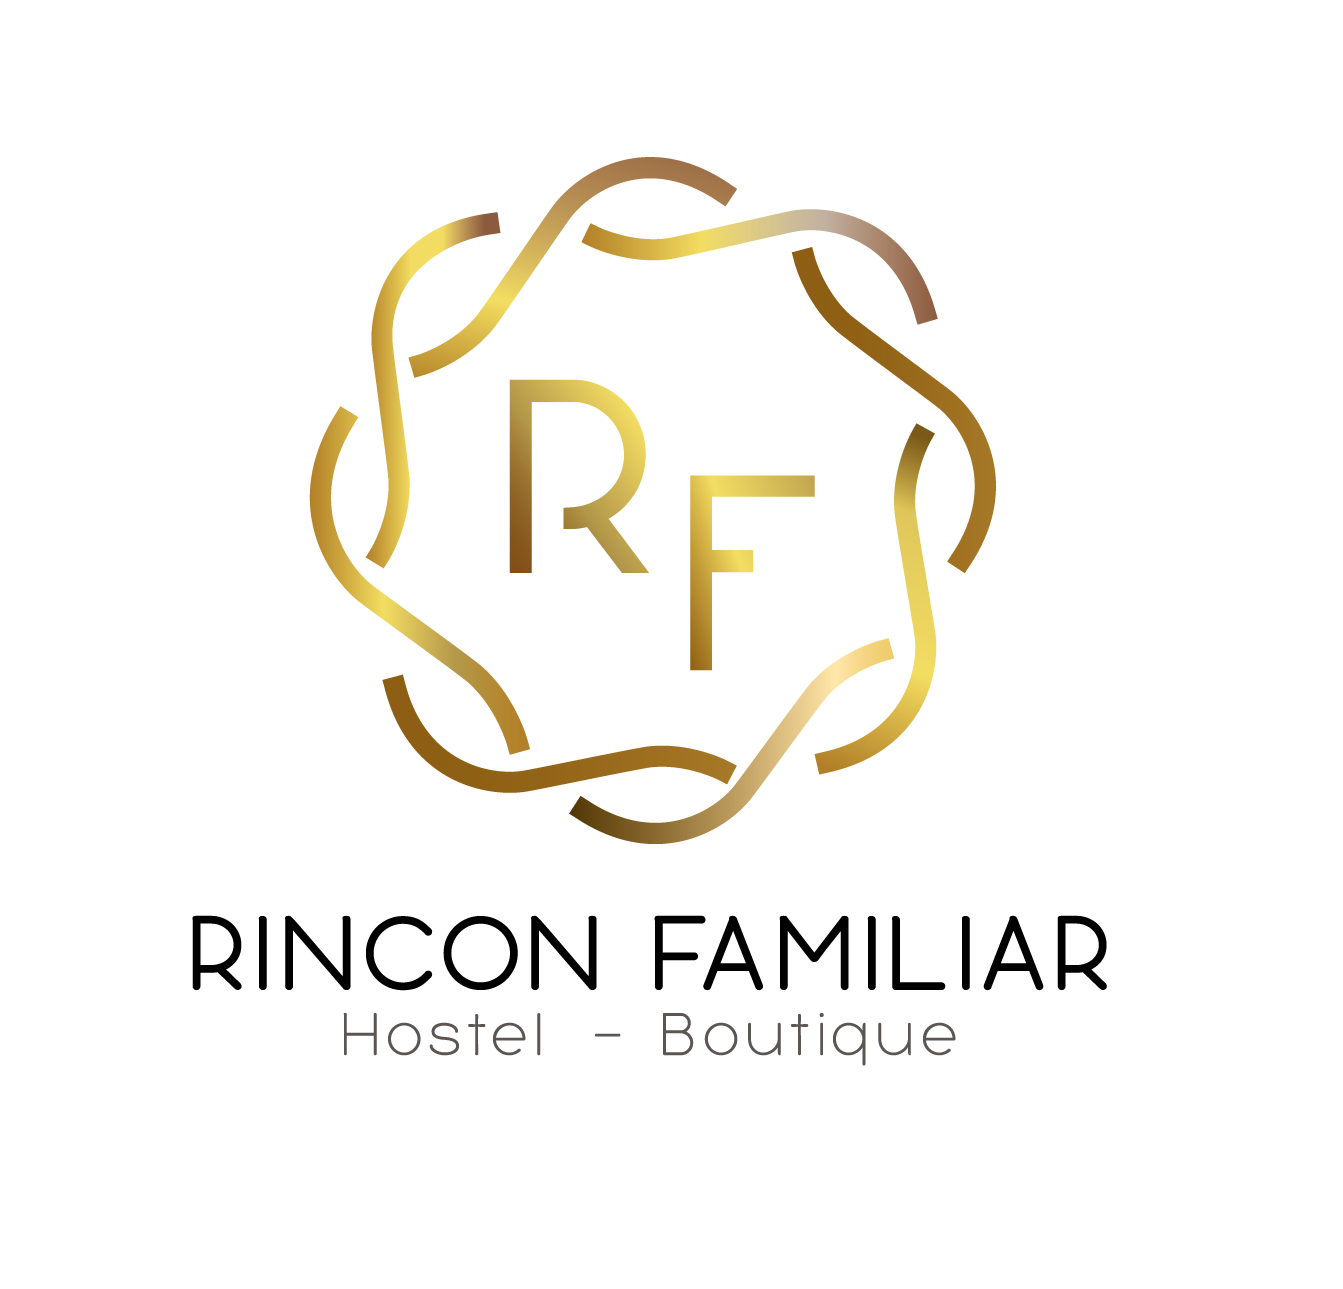 Rincón Familiar Hostel Boutique